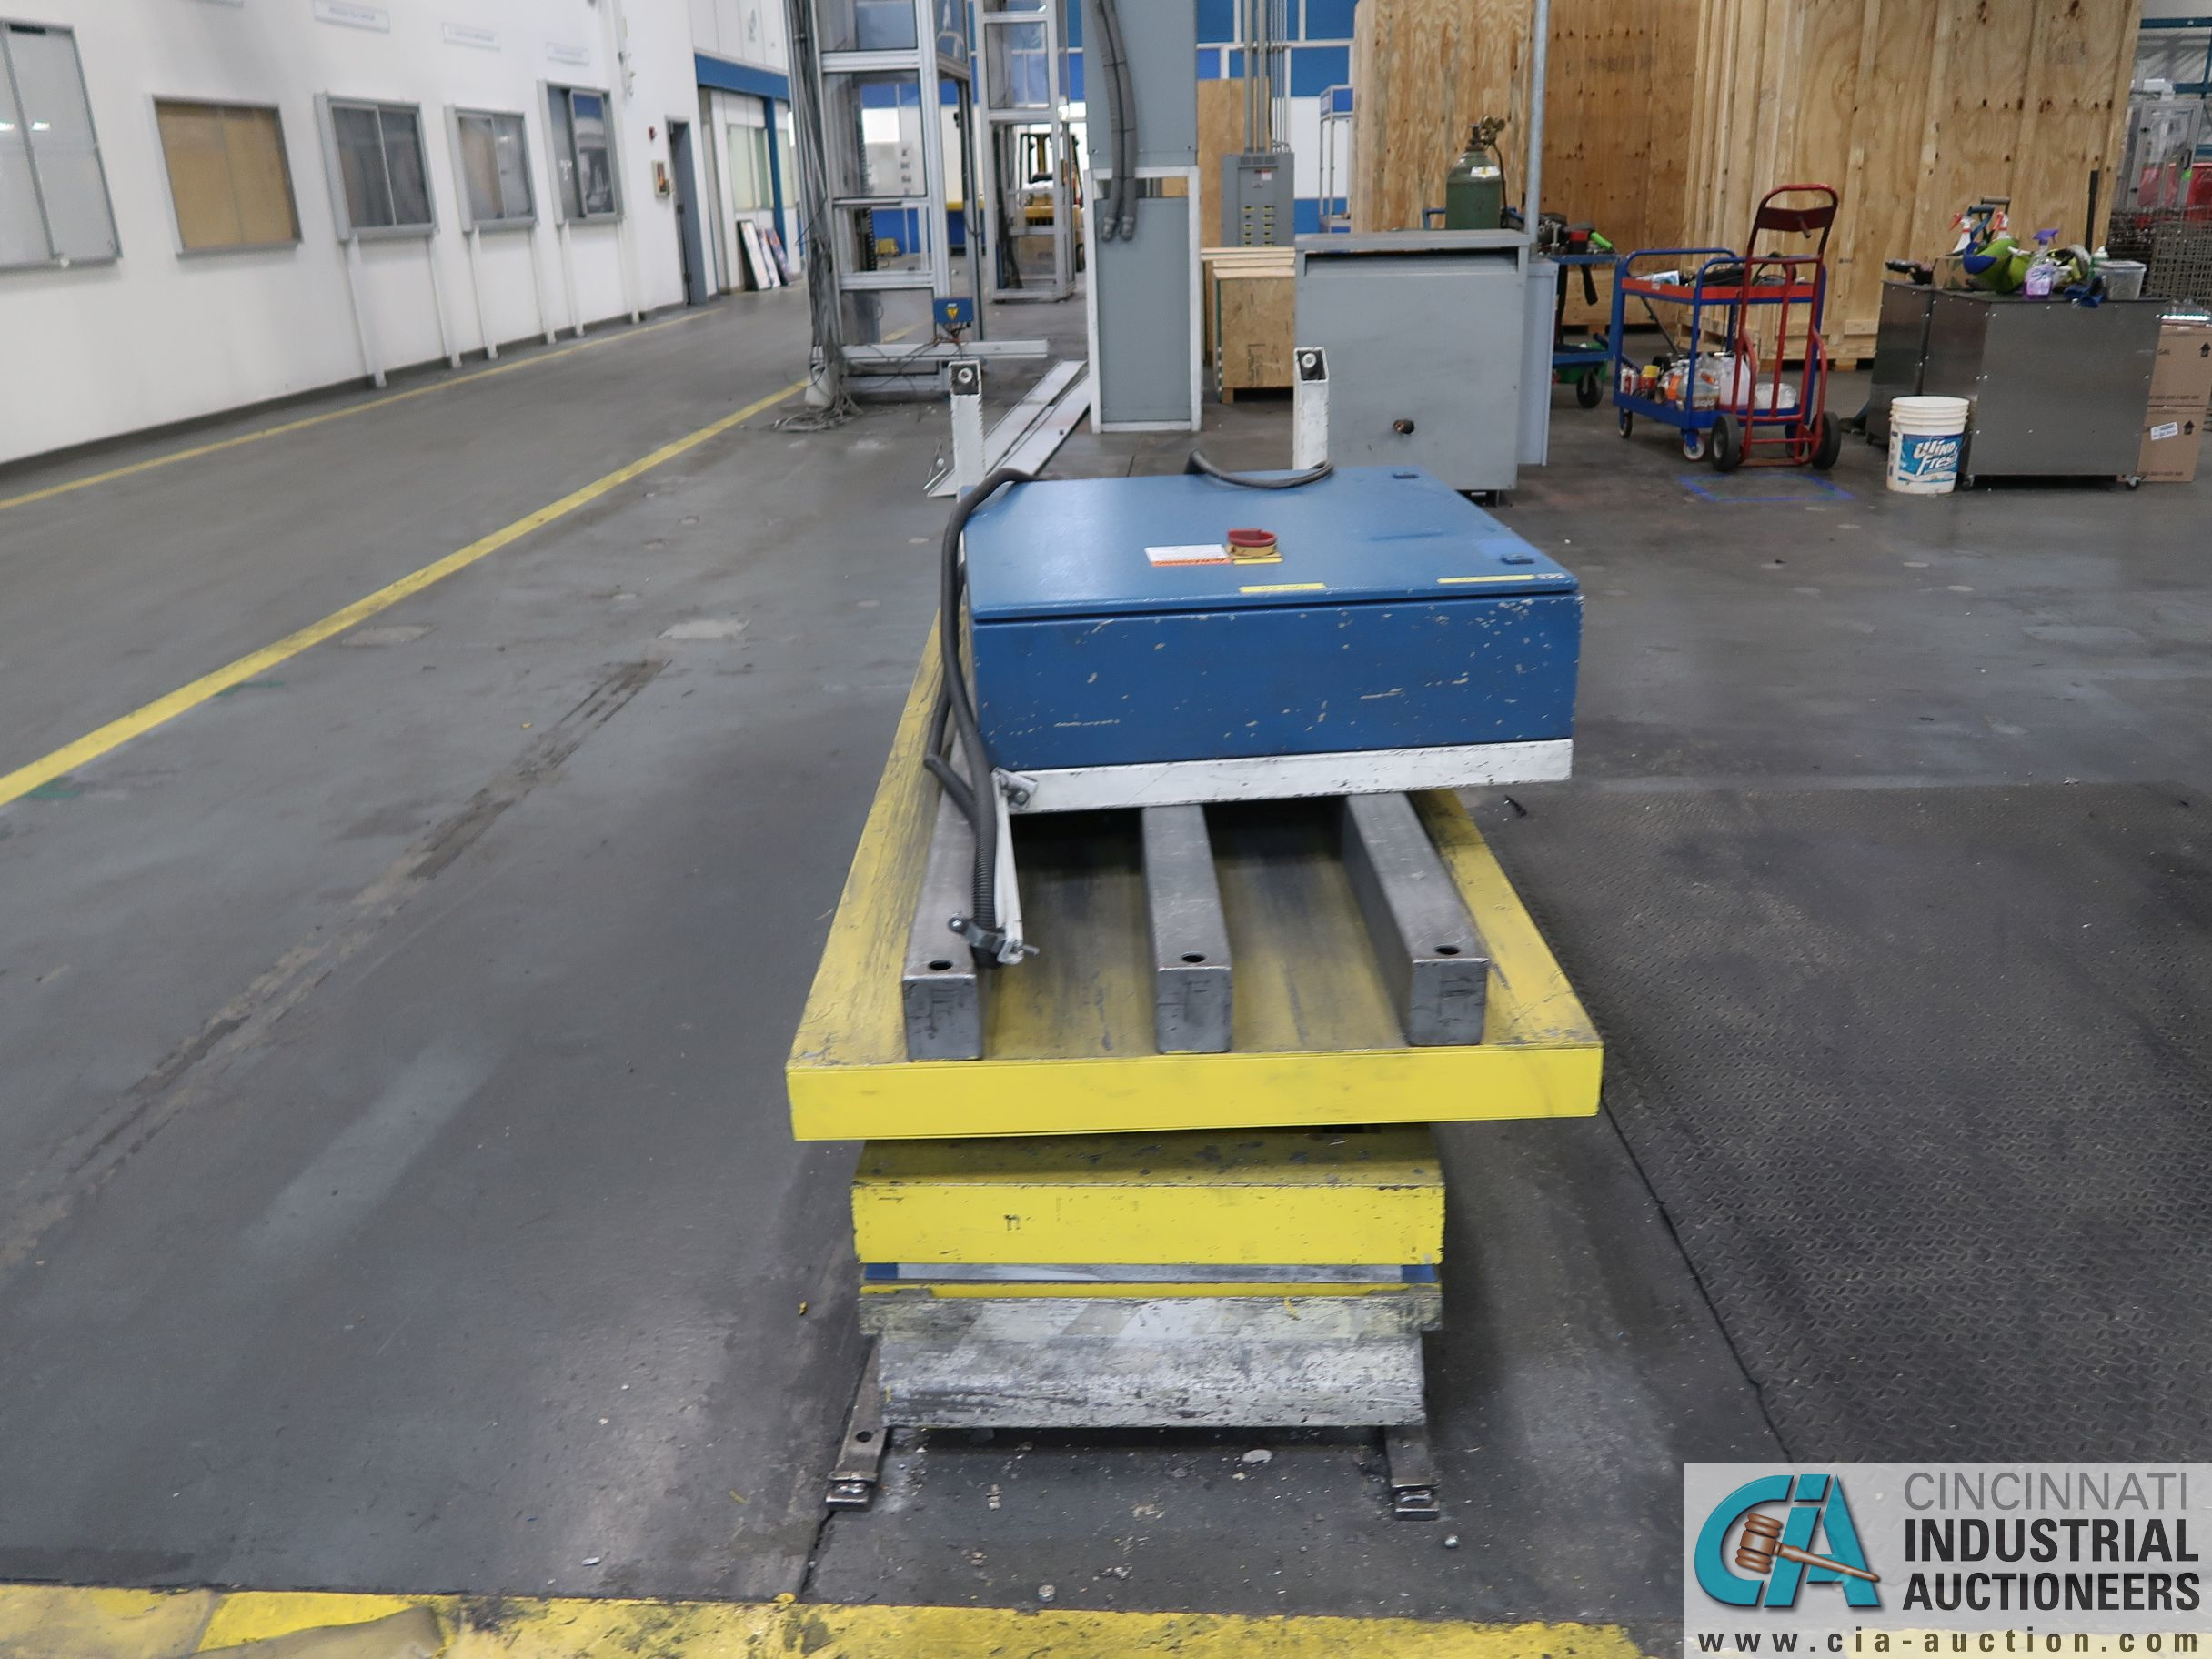 1,000 KG / 2,200 LB. MAX CAPACITY TRACK RUNNING ELECTRIC PENDENT CONTROL - SCISSOR LIFT TABLE; S/N - Image 3 of 3